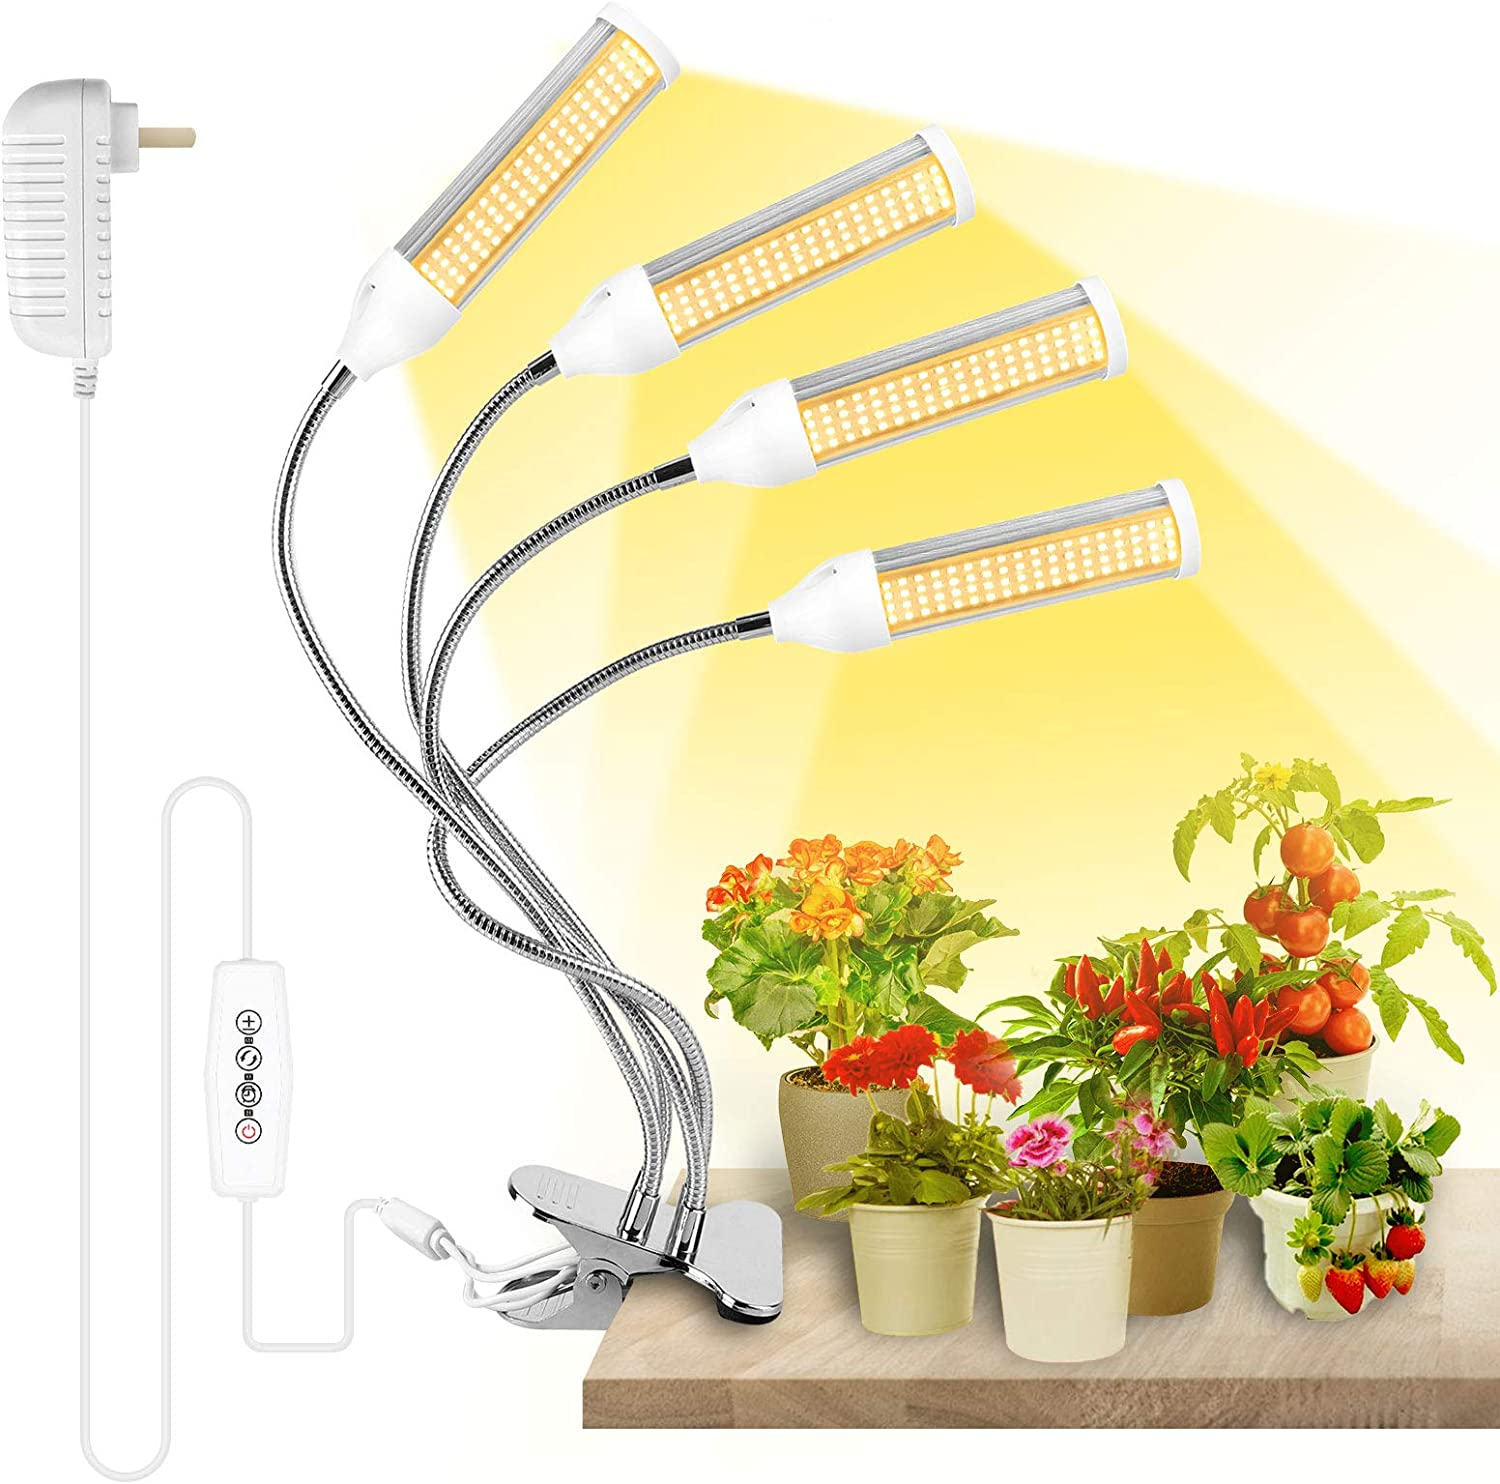 Grow Lights for Indoor Plants,Full Spectrum Plant Light for Indoor Plants Garden Hydroponics Succulent , Plant Grow Lamp with 3 6 12H Timer, 4 Switch Modes ,6 Brightness Settings (288LEDs)